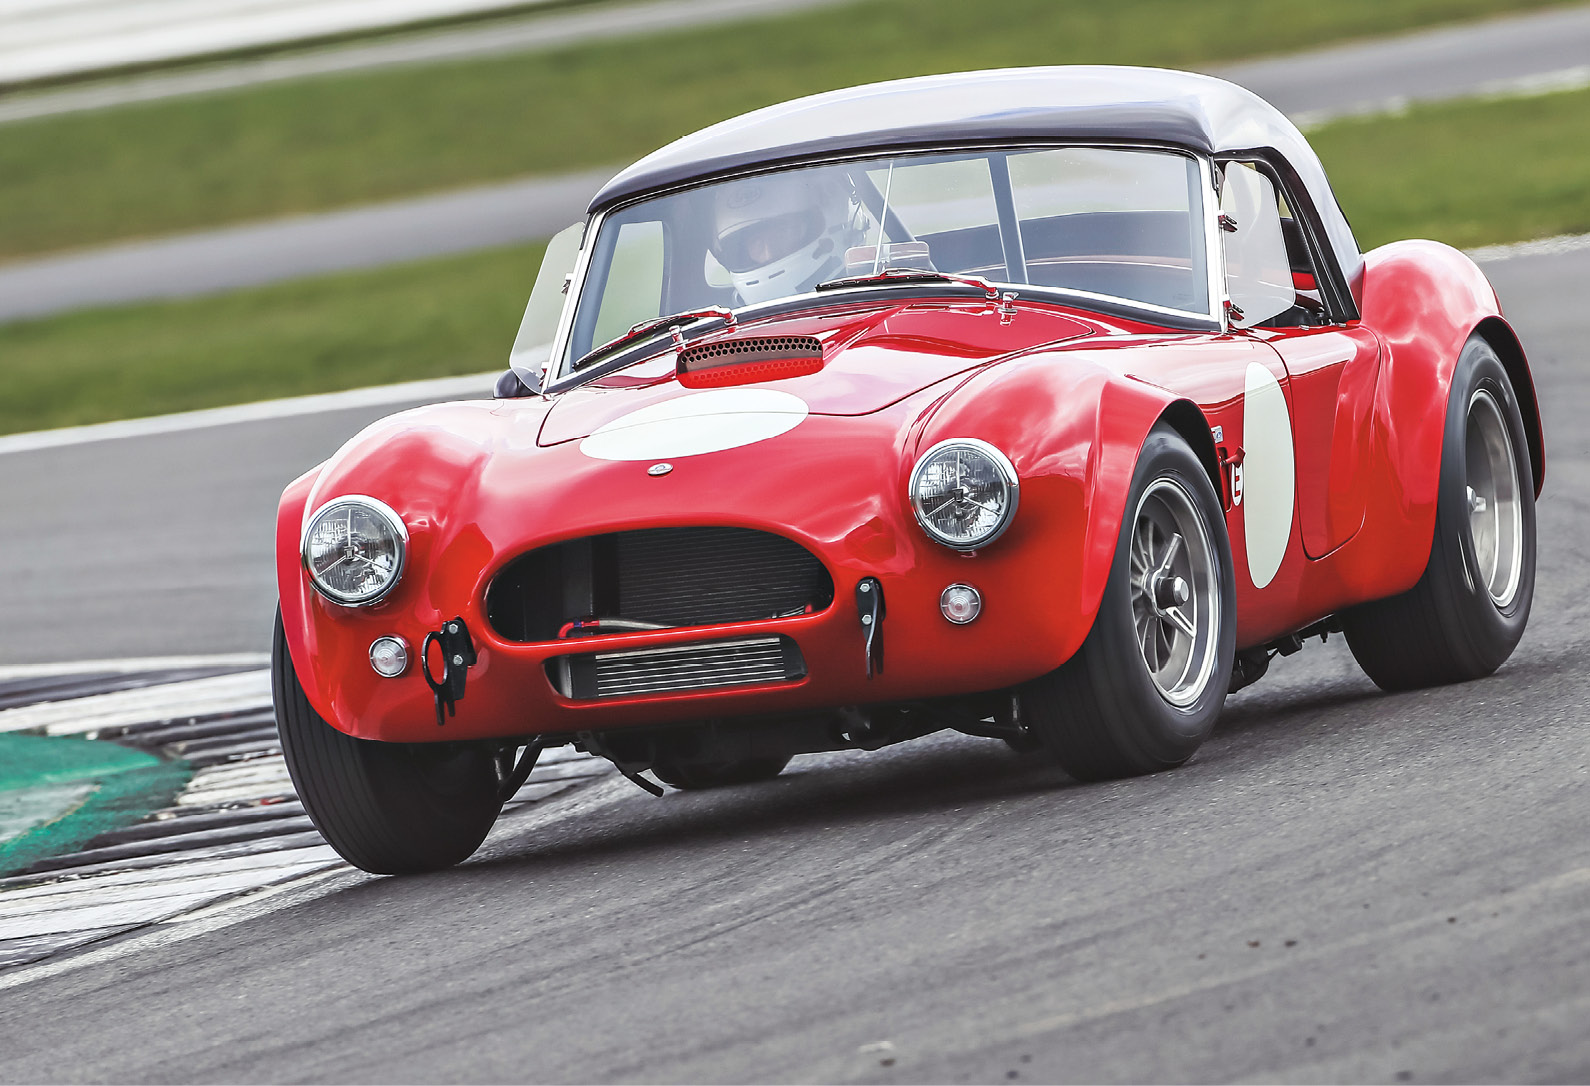 Legend says it's impossible to lift a wheel in an original Cobra due to the soft chassis